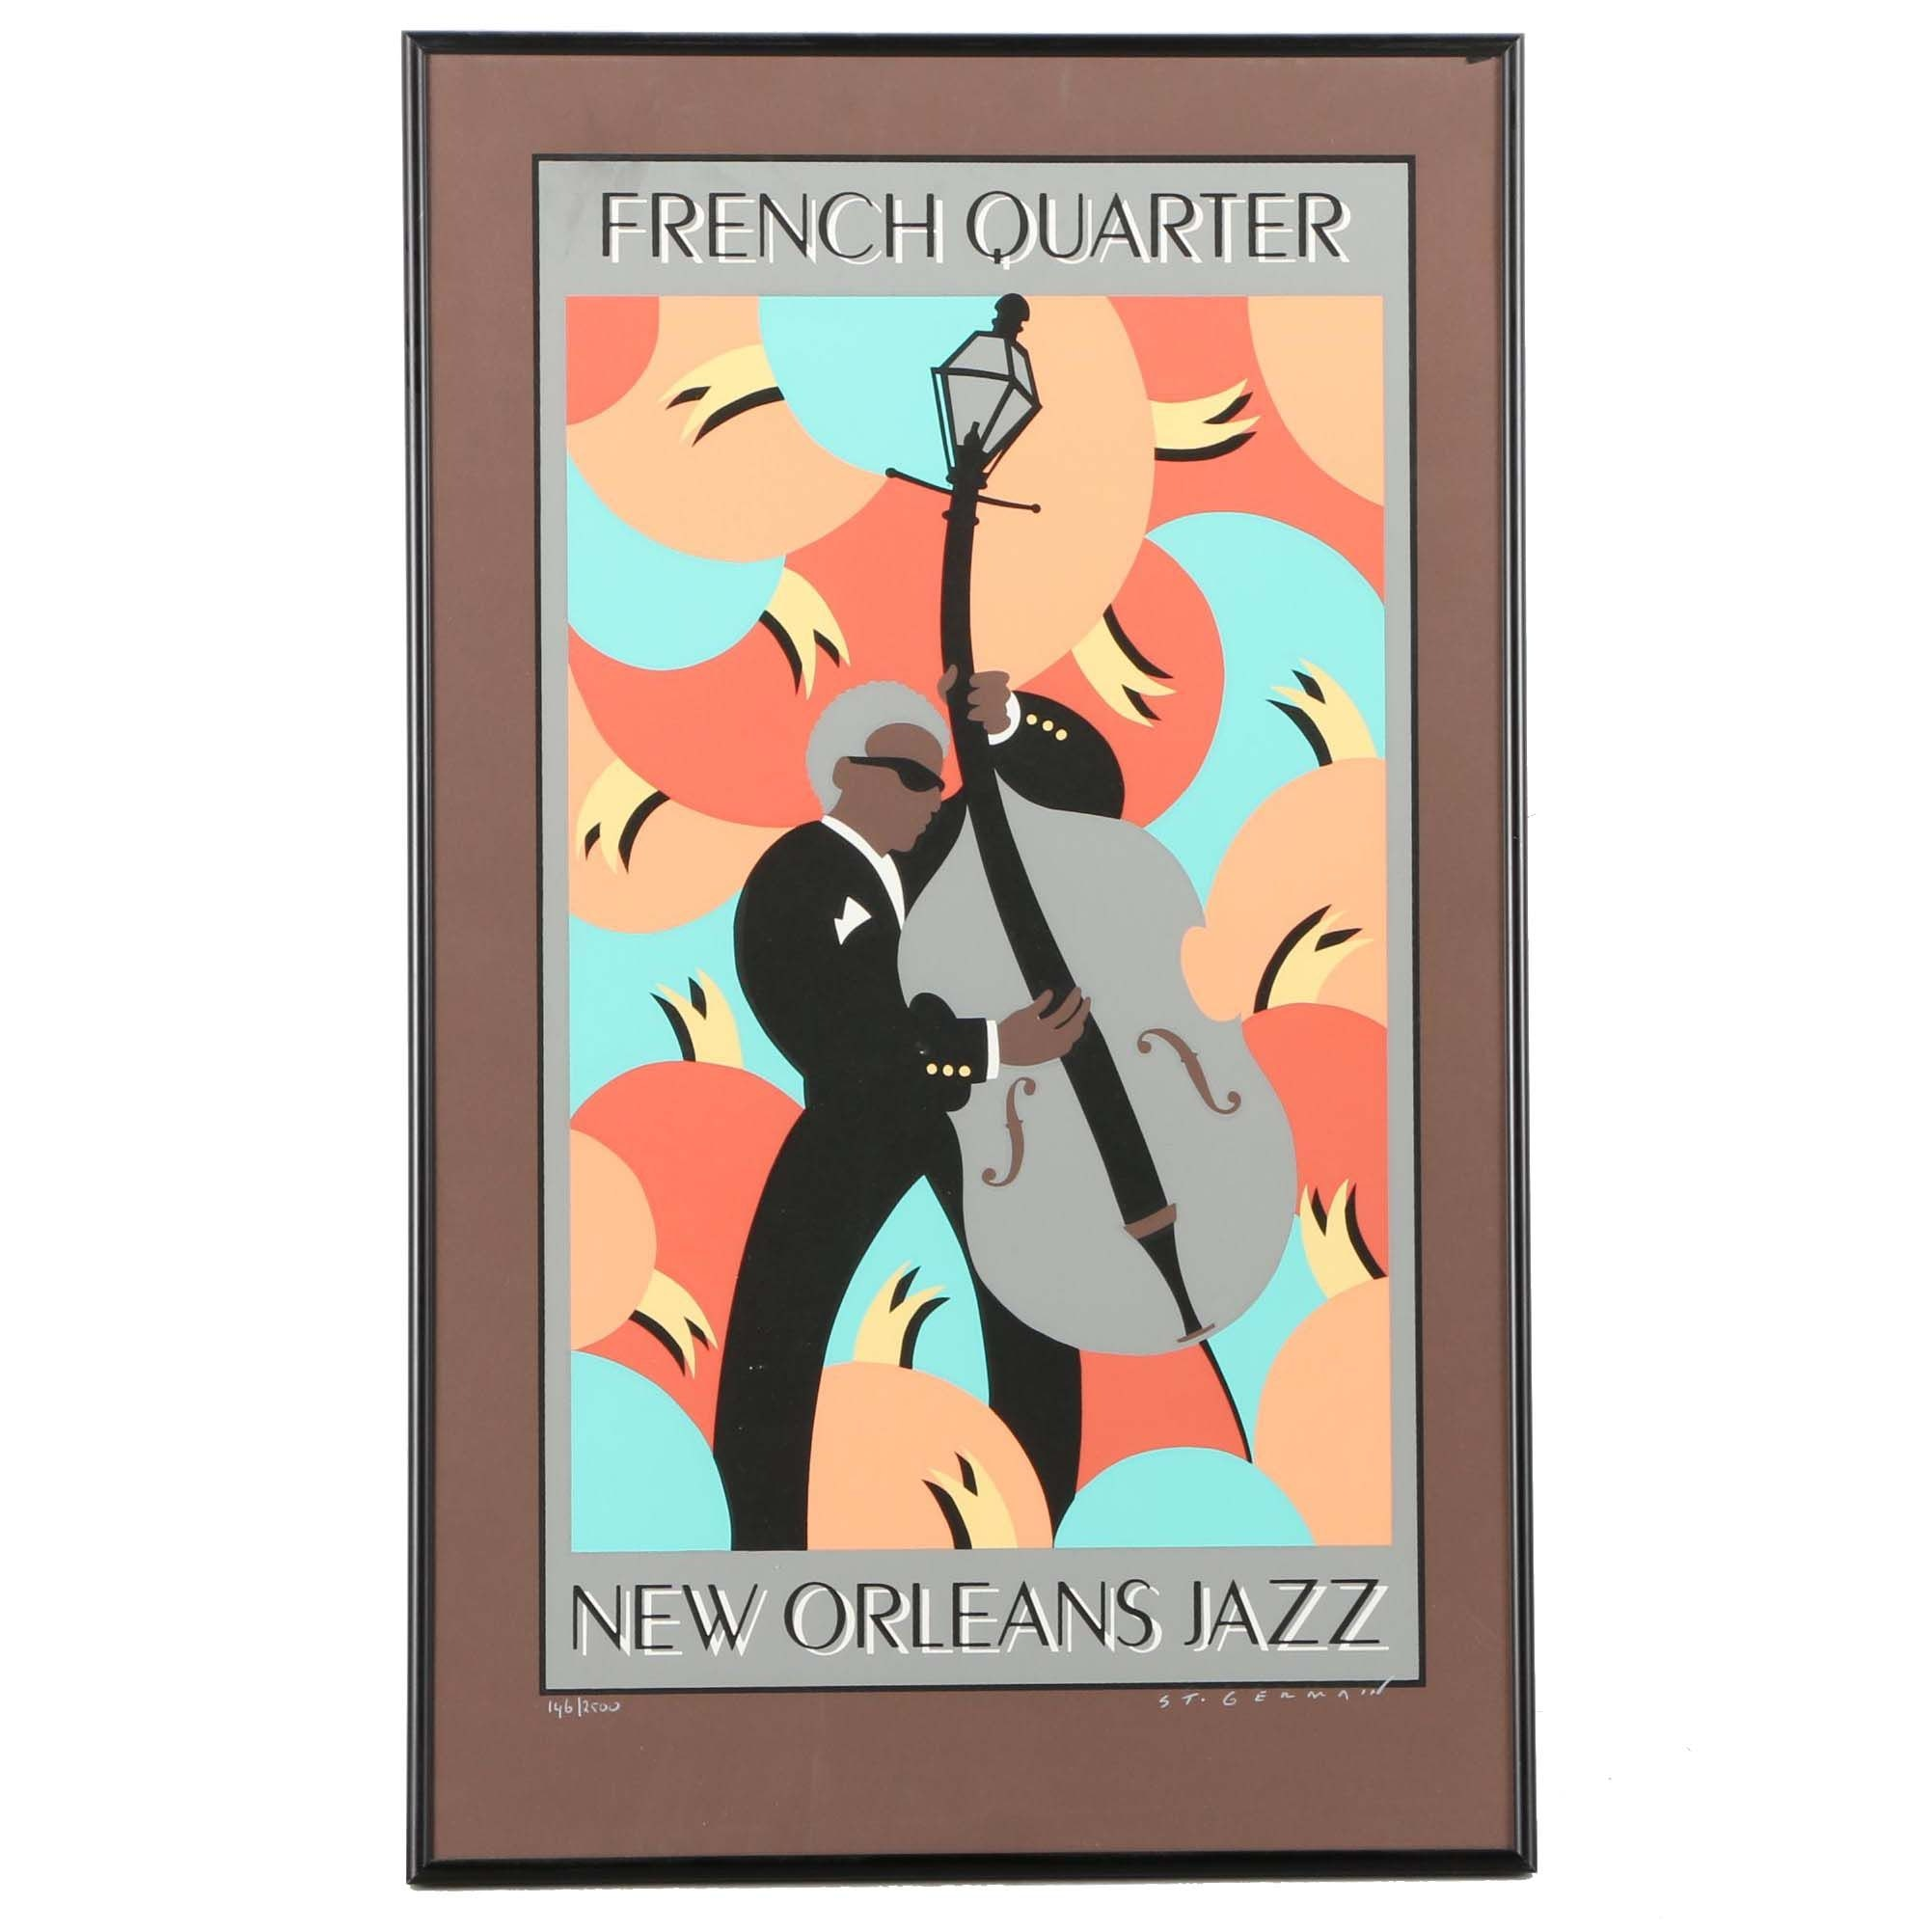 Stephen St. Germain Signed Limited Edition Serigraph Poster French Quarter New Orleans Jazz